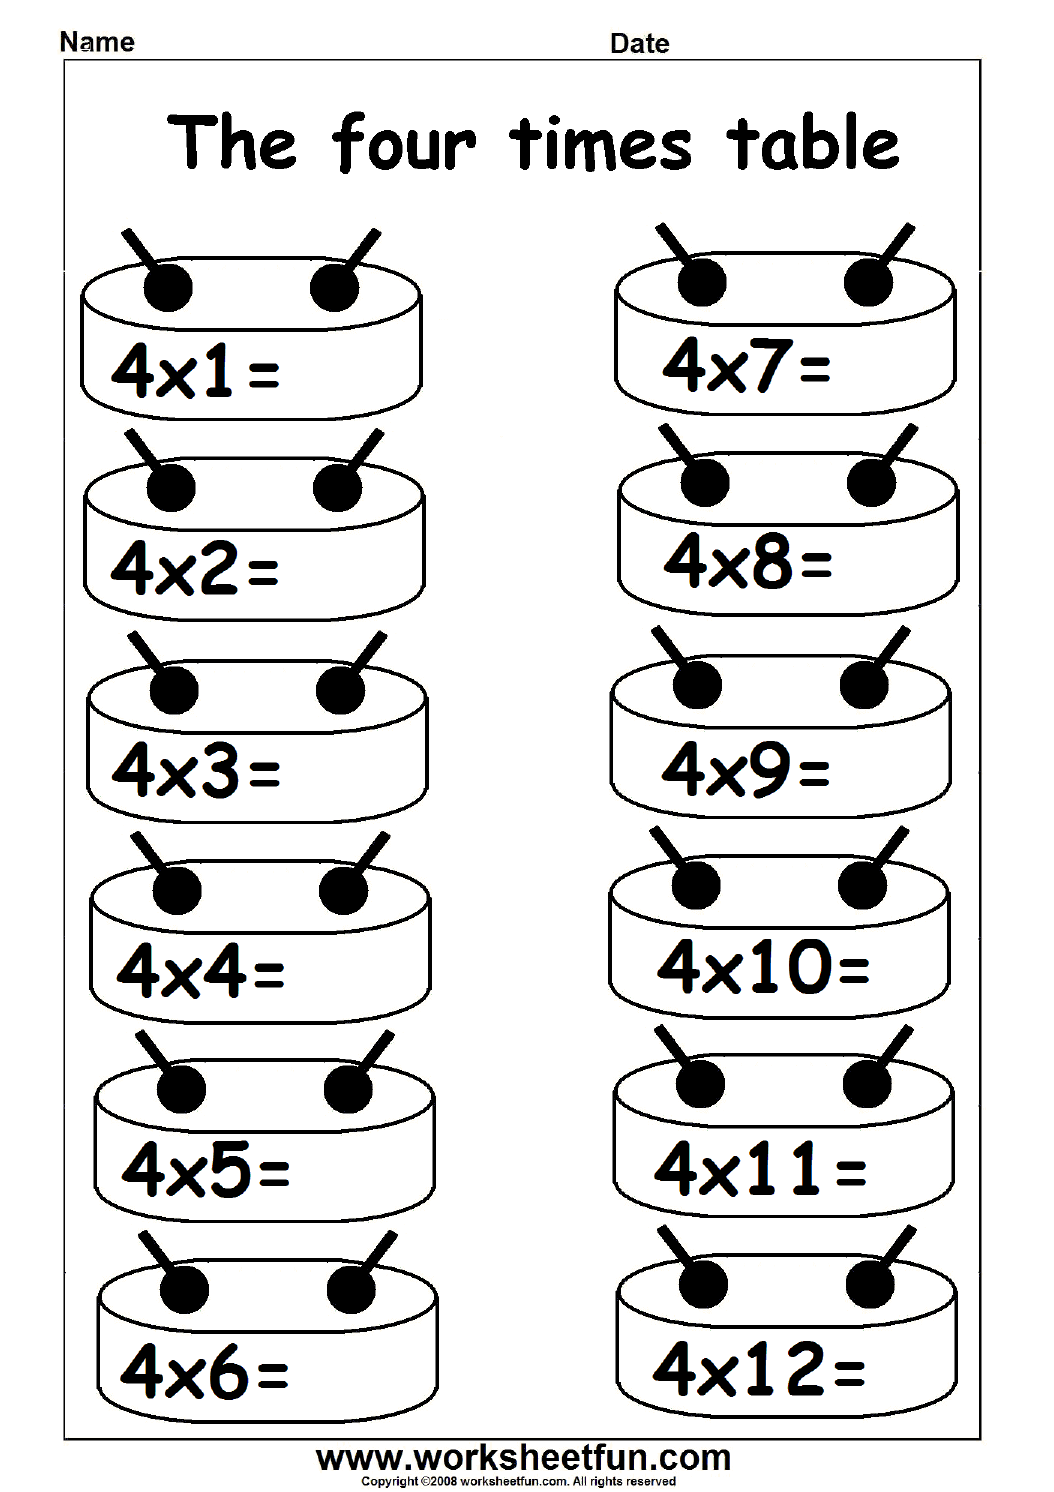 Multiplication Worksheets multiplication worksheets 4 : Multiplication Times Table Practice - 2-12 times table | Printable ...